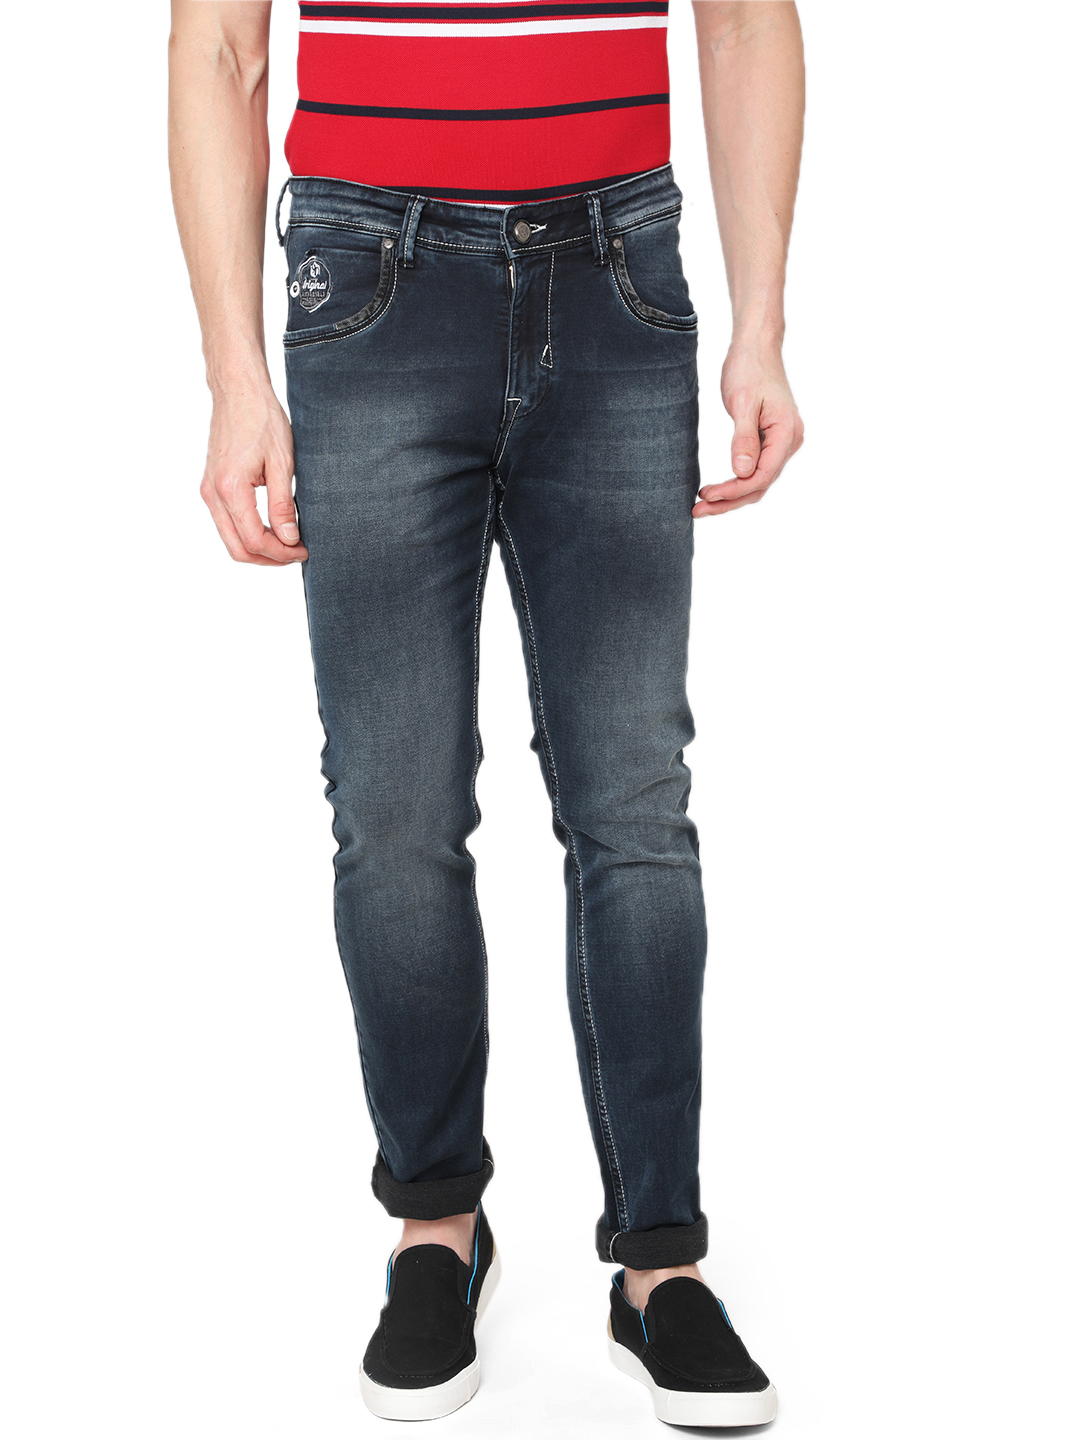 OXEMBERG   Oxemberg Men's Dark Blue Cotton Stretchable Slim Fit Jeans